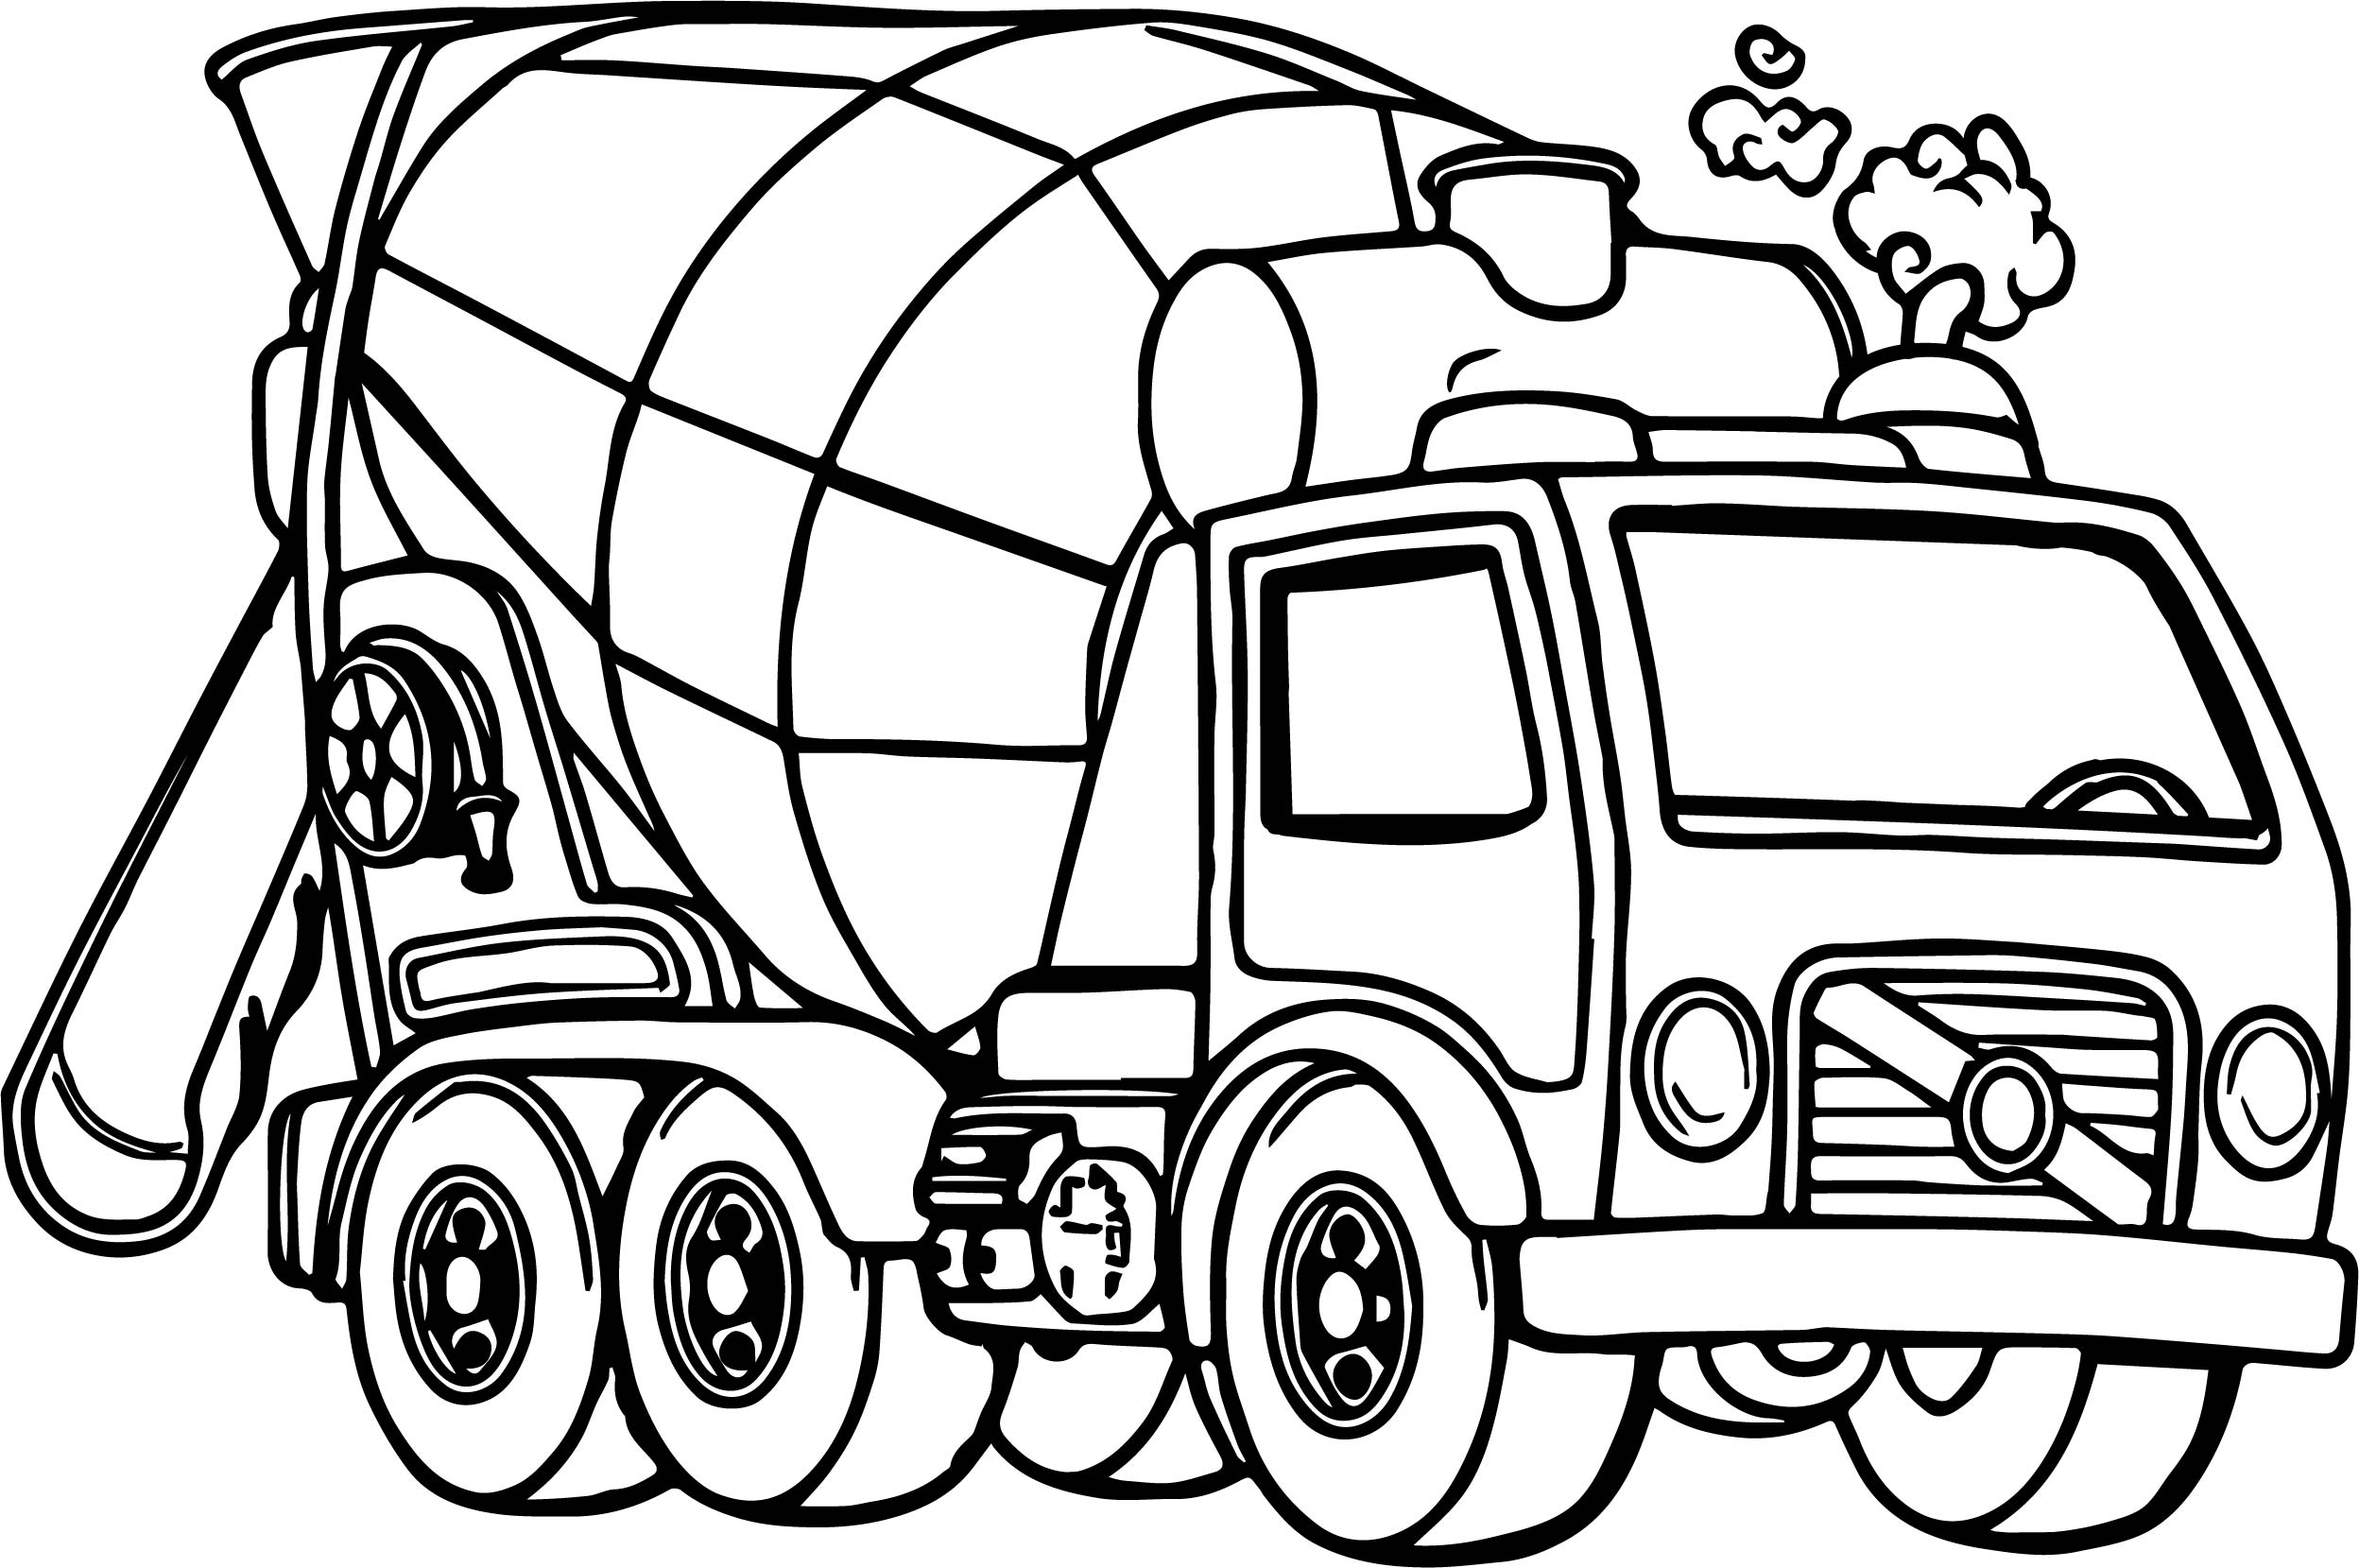 cement mixer coloring pages cement mixer coloring pages to print coloring pages for coloring pages cement mixer